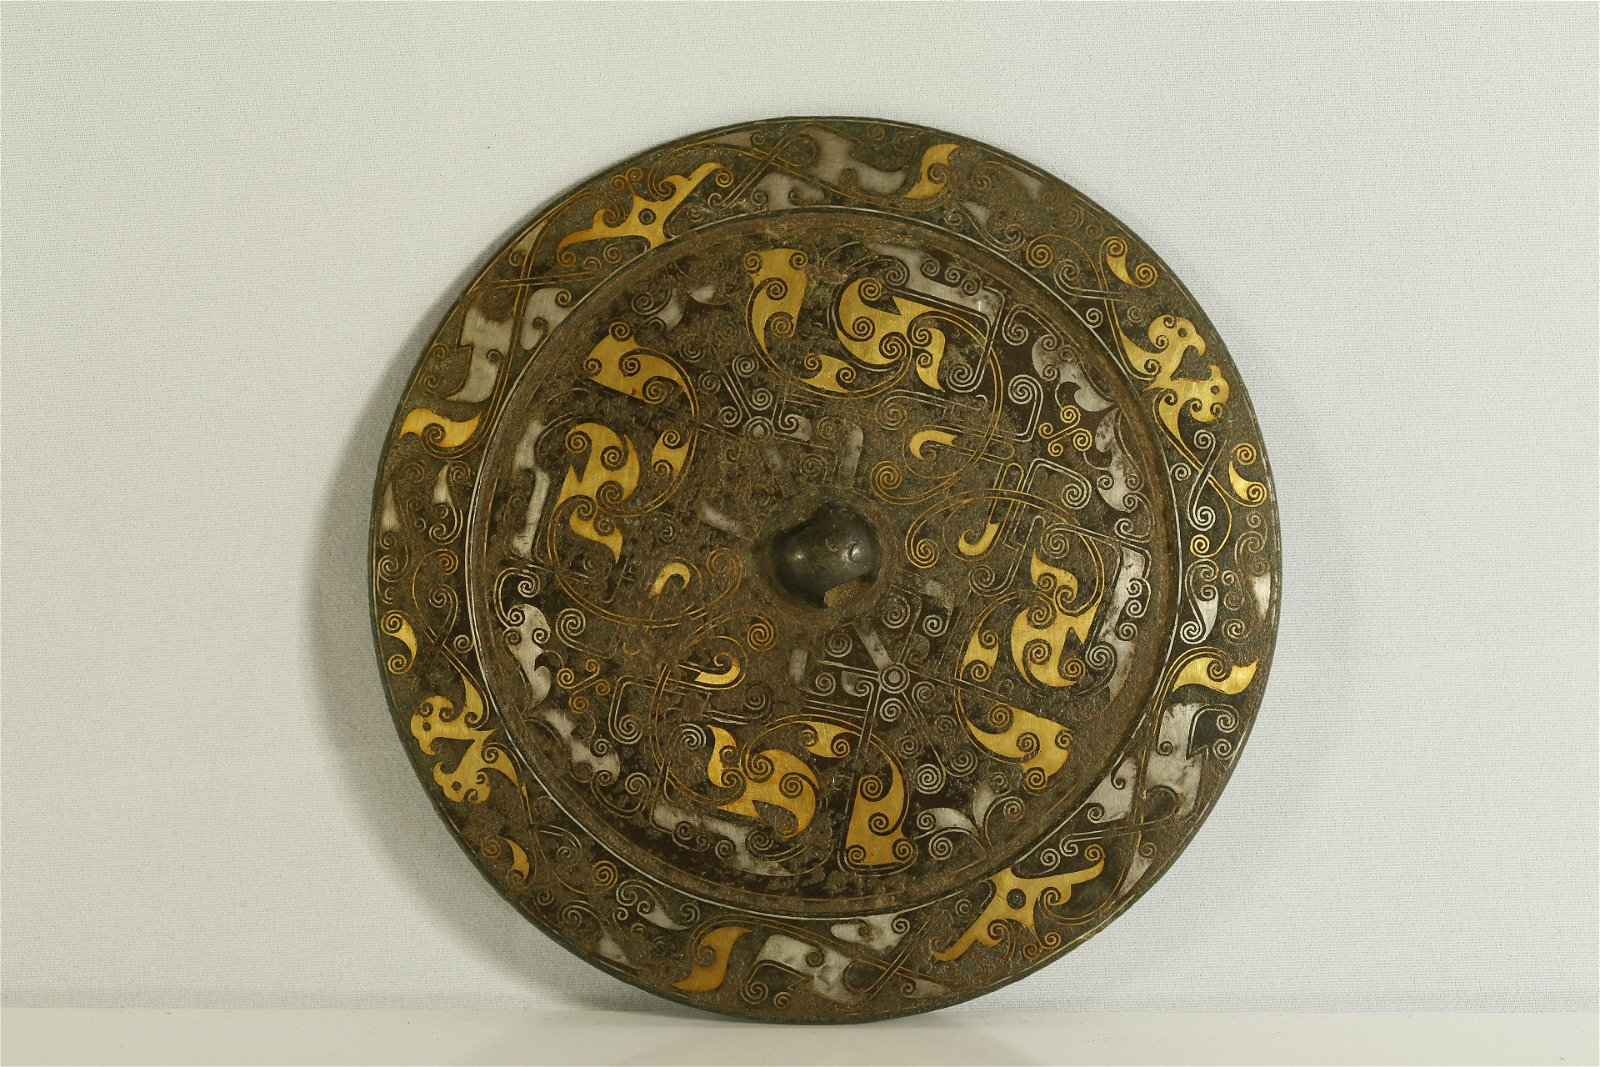 A Very Rare Gold and Silver-Inlaid Bronze Mirror